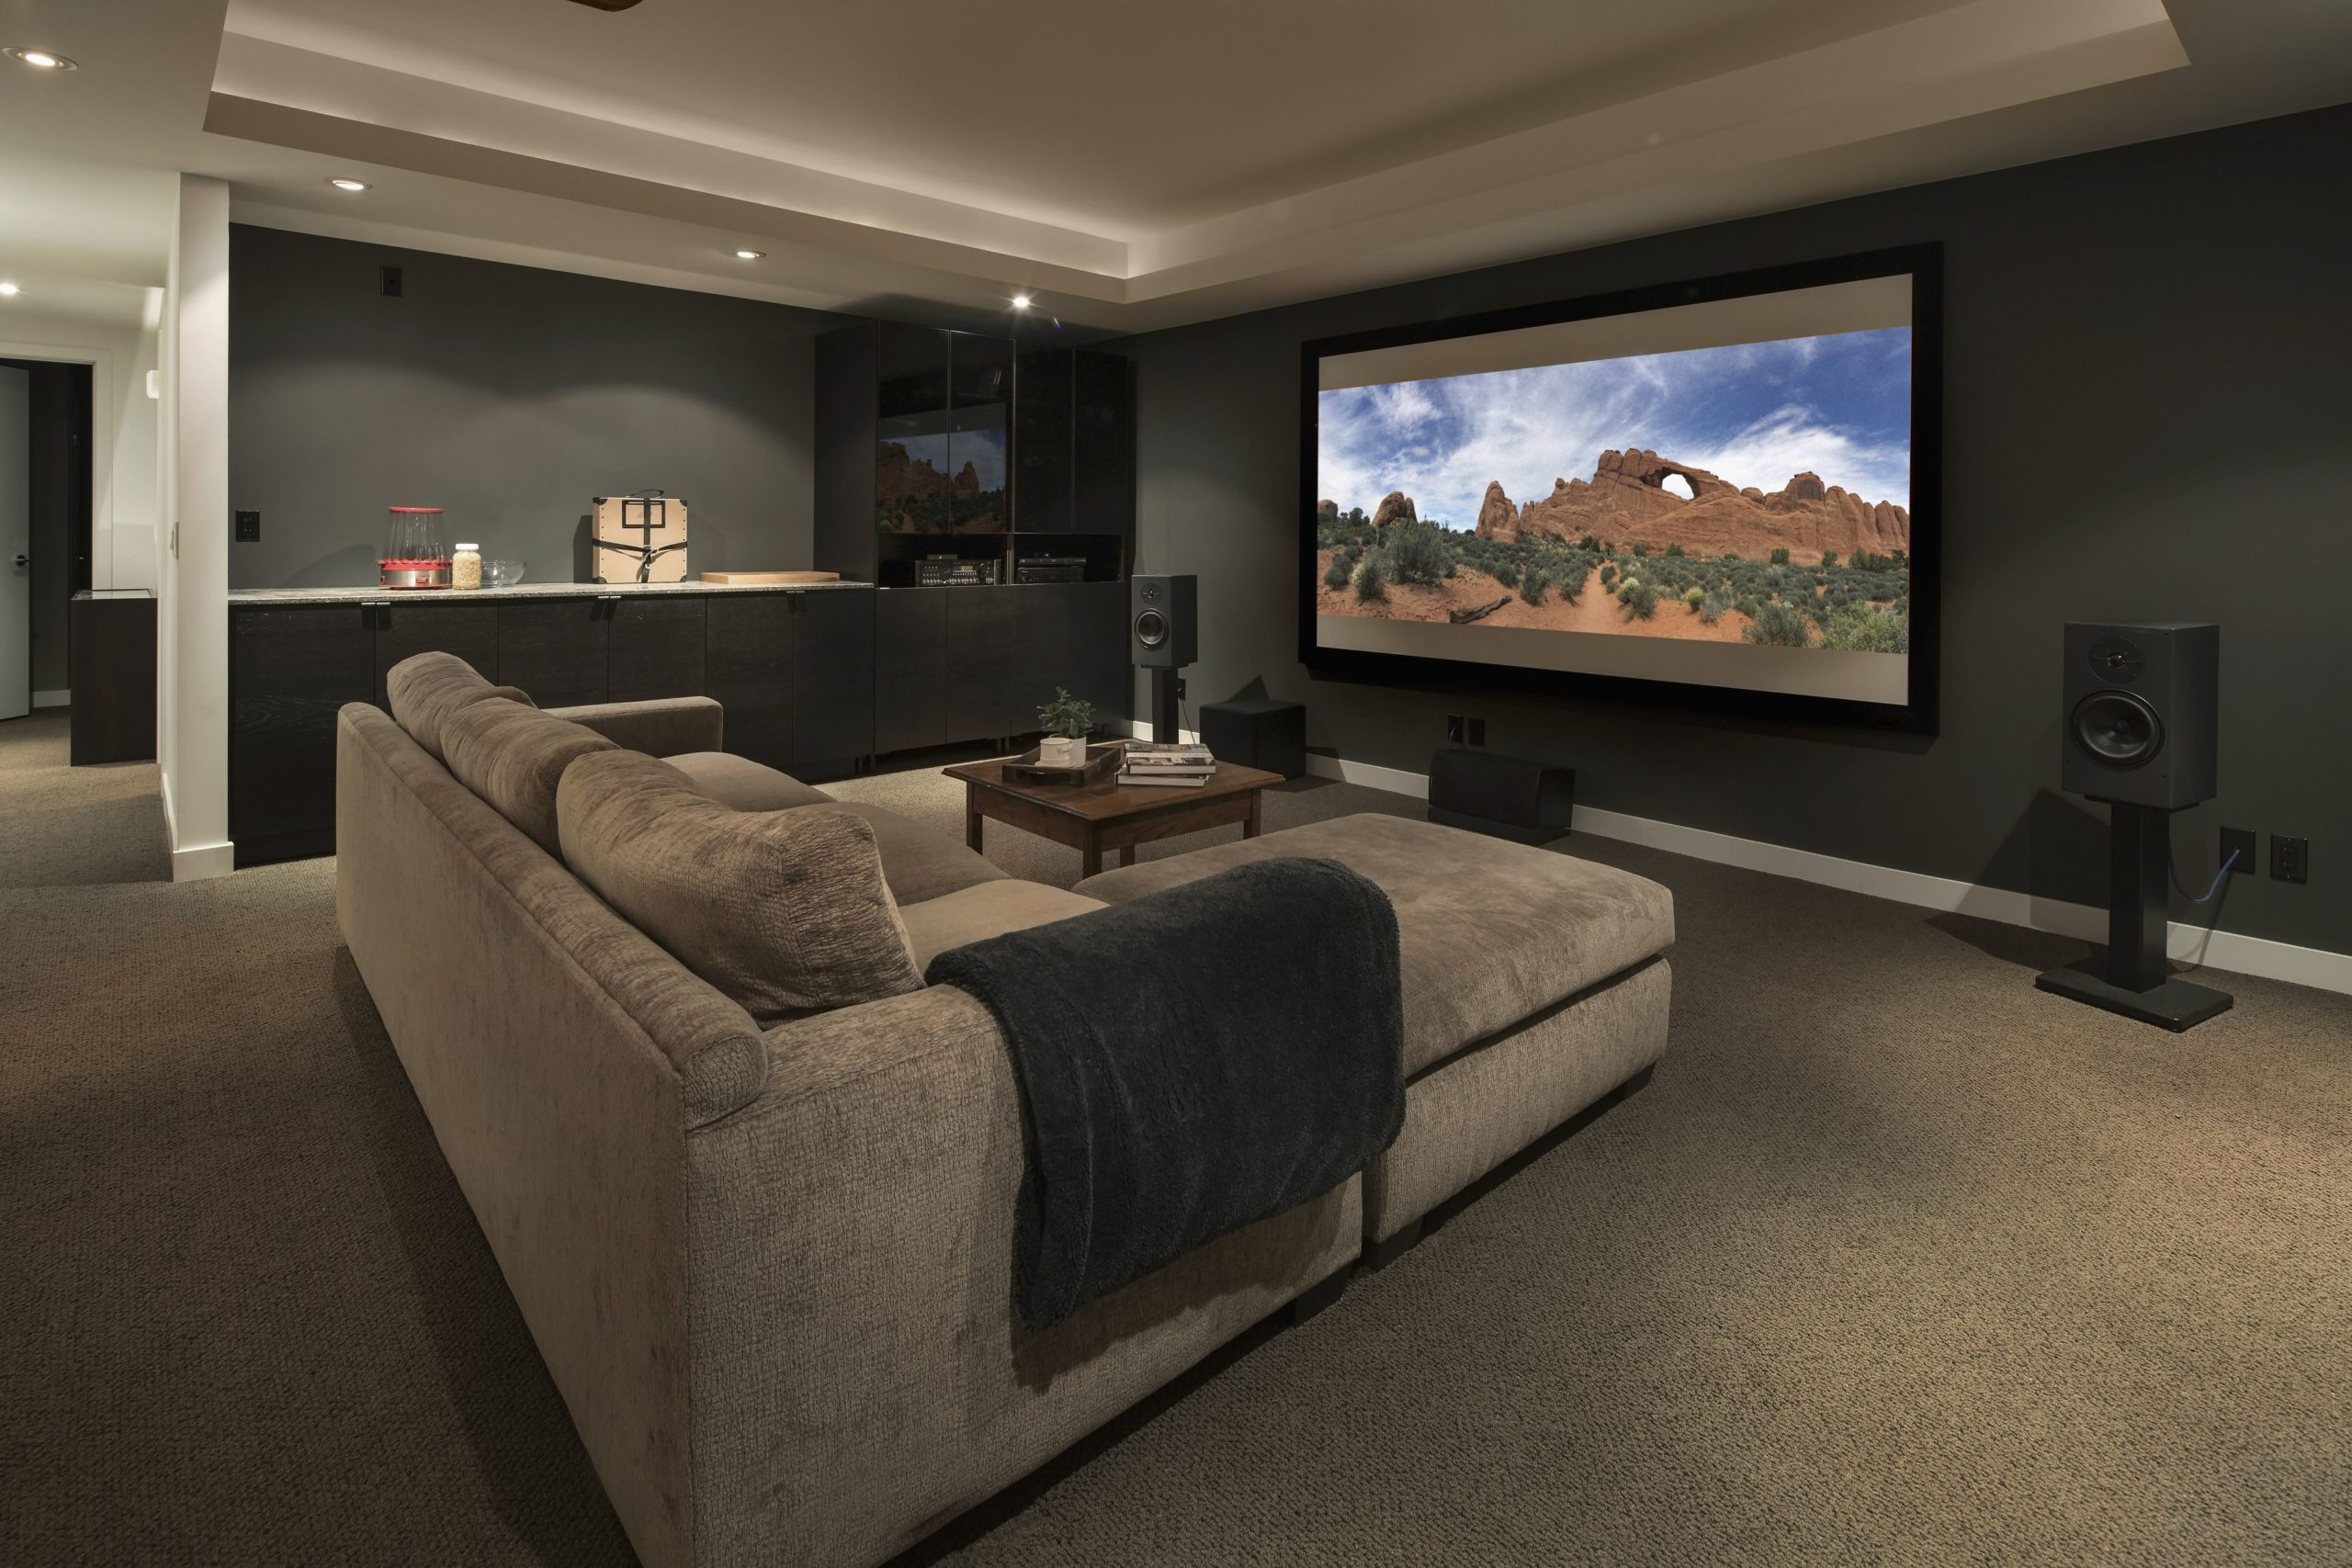 Designing Building A Home Theater 7 Tips For Placing Screens Projectors And Speakers